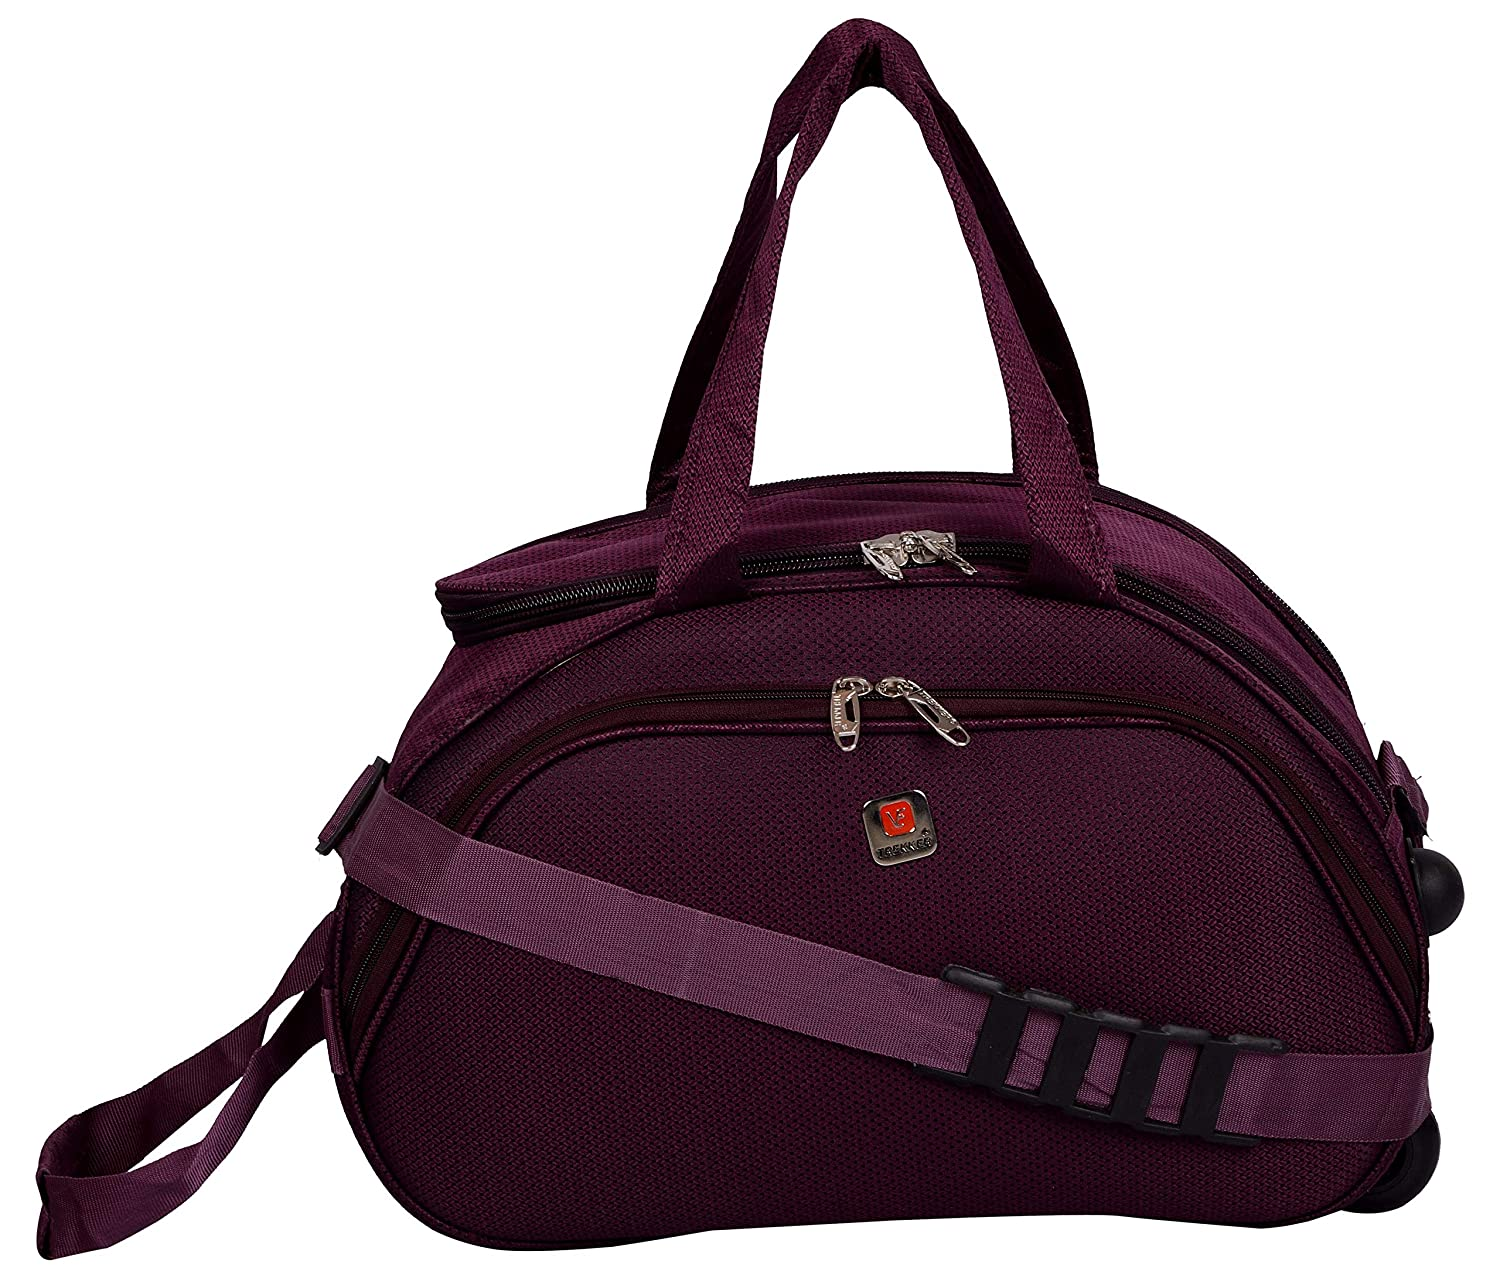 48ebffd08 TREKKER Unisex Red Polyester Travel Duffel Bag with Wheels Size 22-inch:  Amazon.in: Bags, Wallets & Luggage